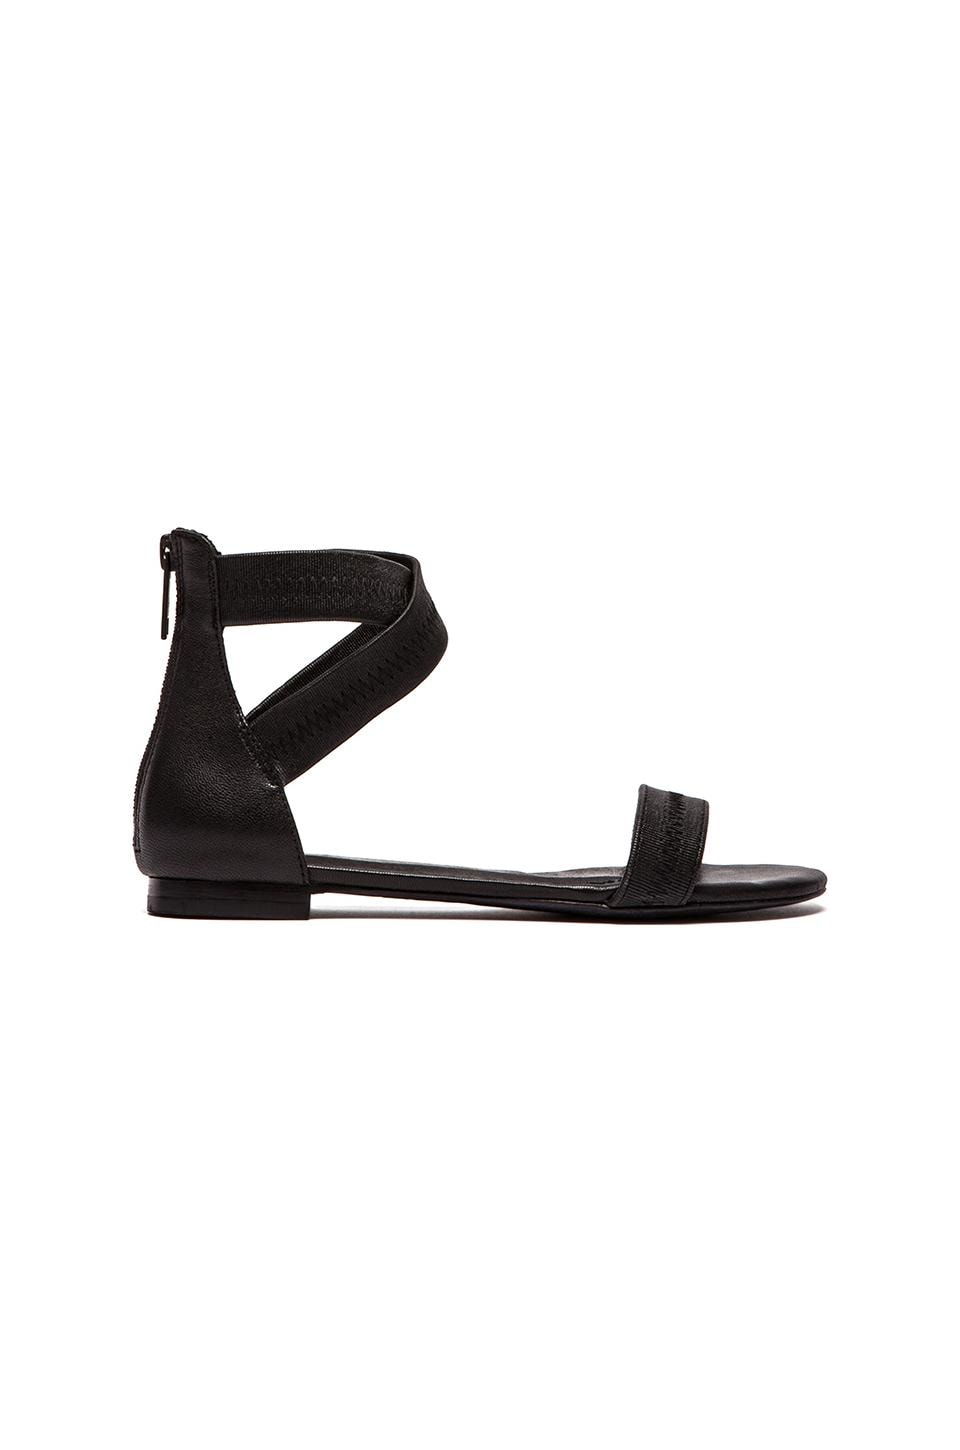 Joie Norah Flat in Black